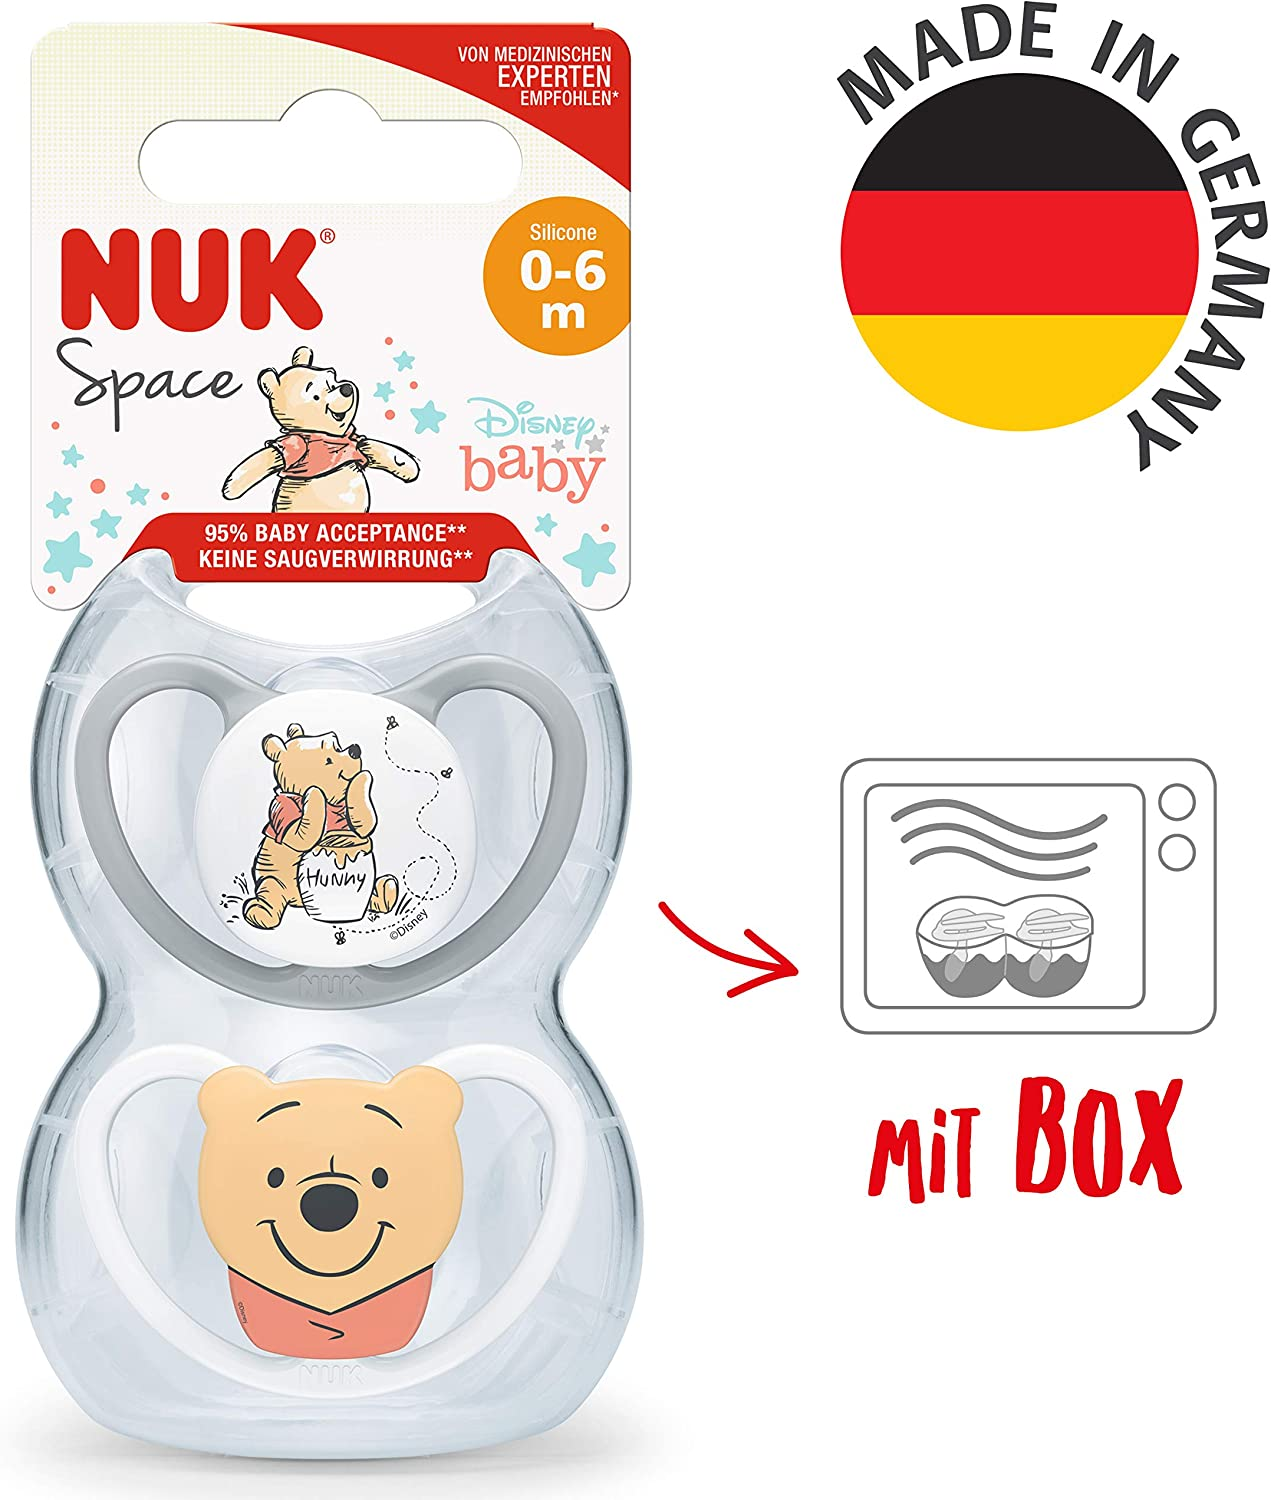 Disney Winnie the Pooh NUK Space Baby Dummy 0-6 Months 2 Count Soothers with Extra Ventilation| BPA-Free Silicone